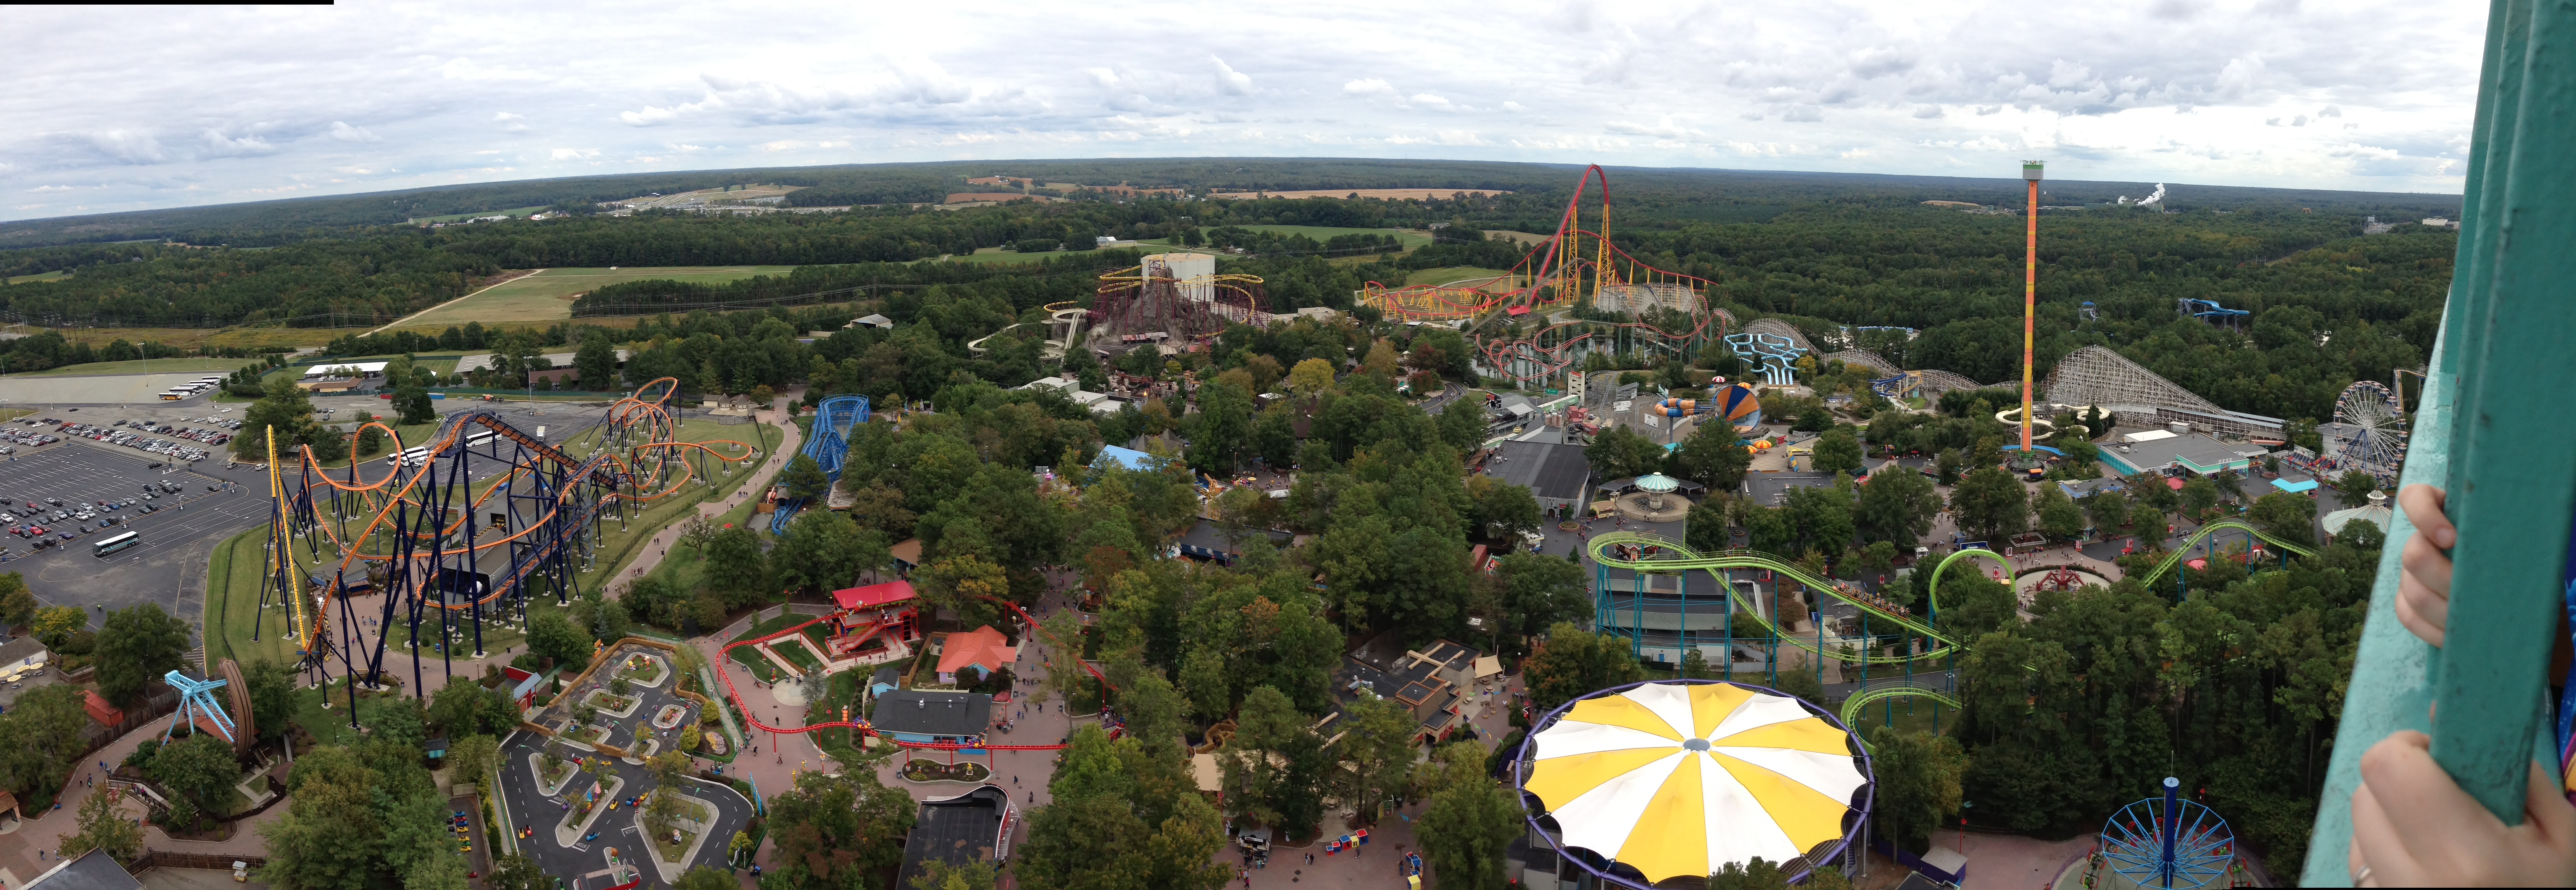 Kings dominion discount coupons - 074